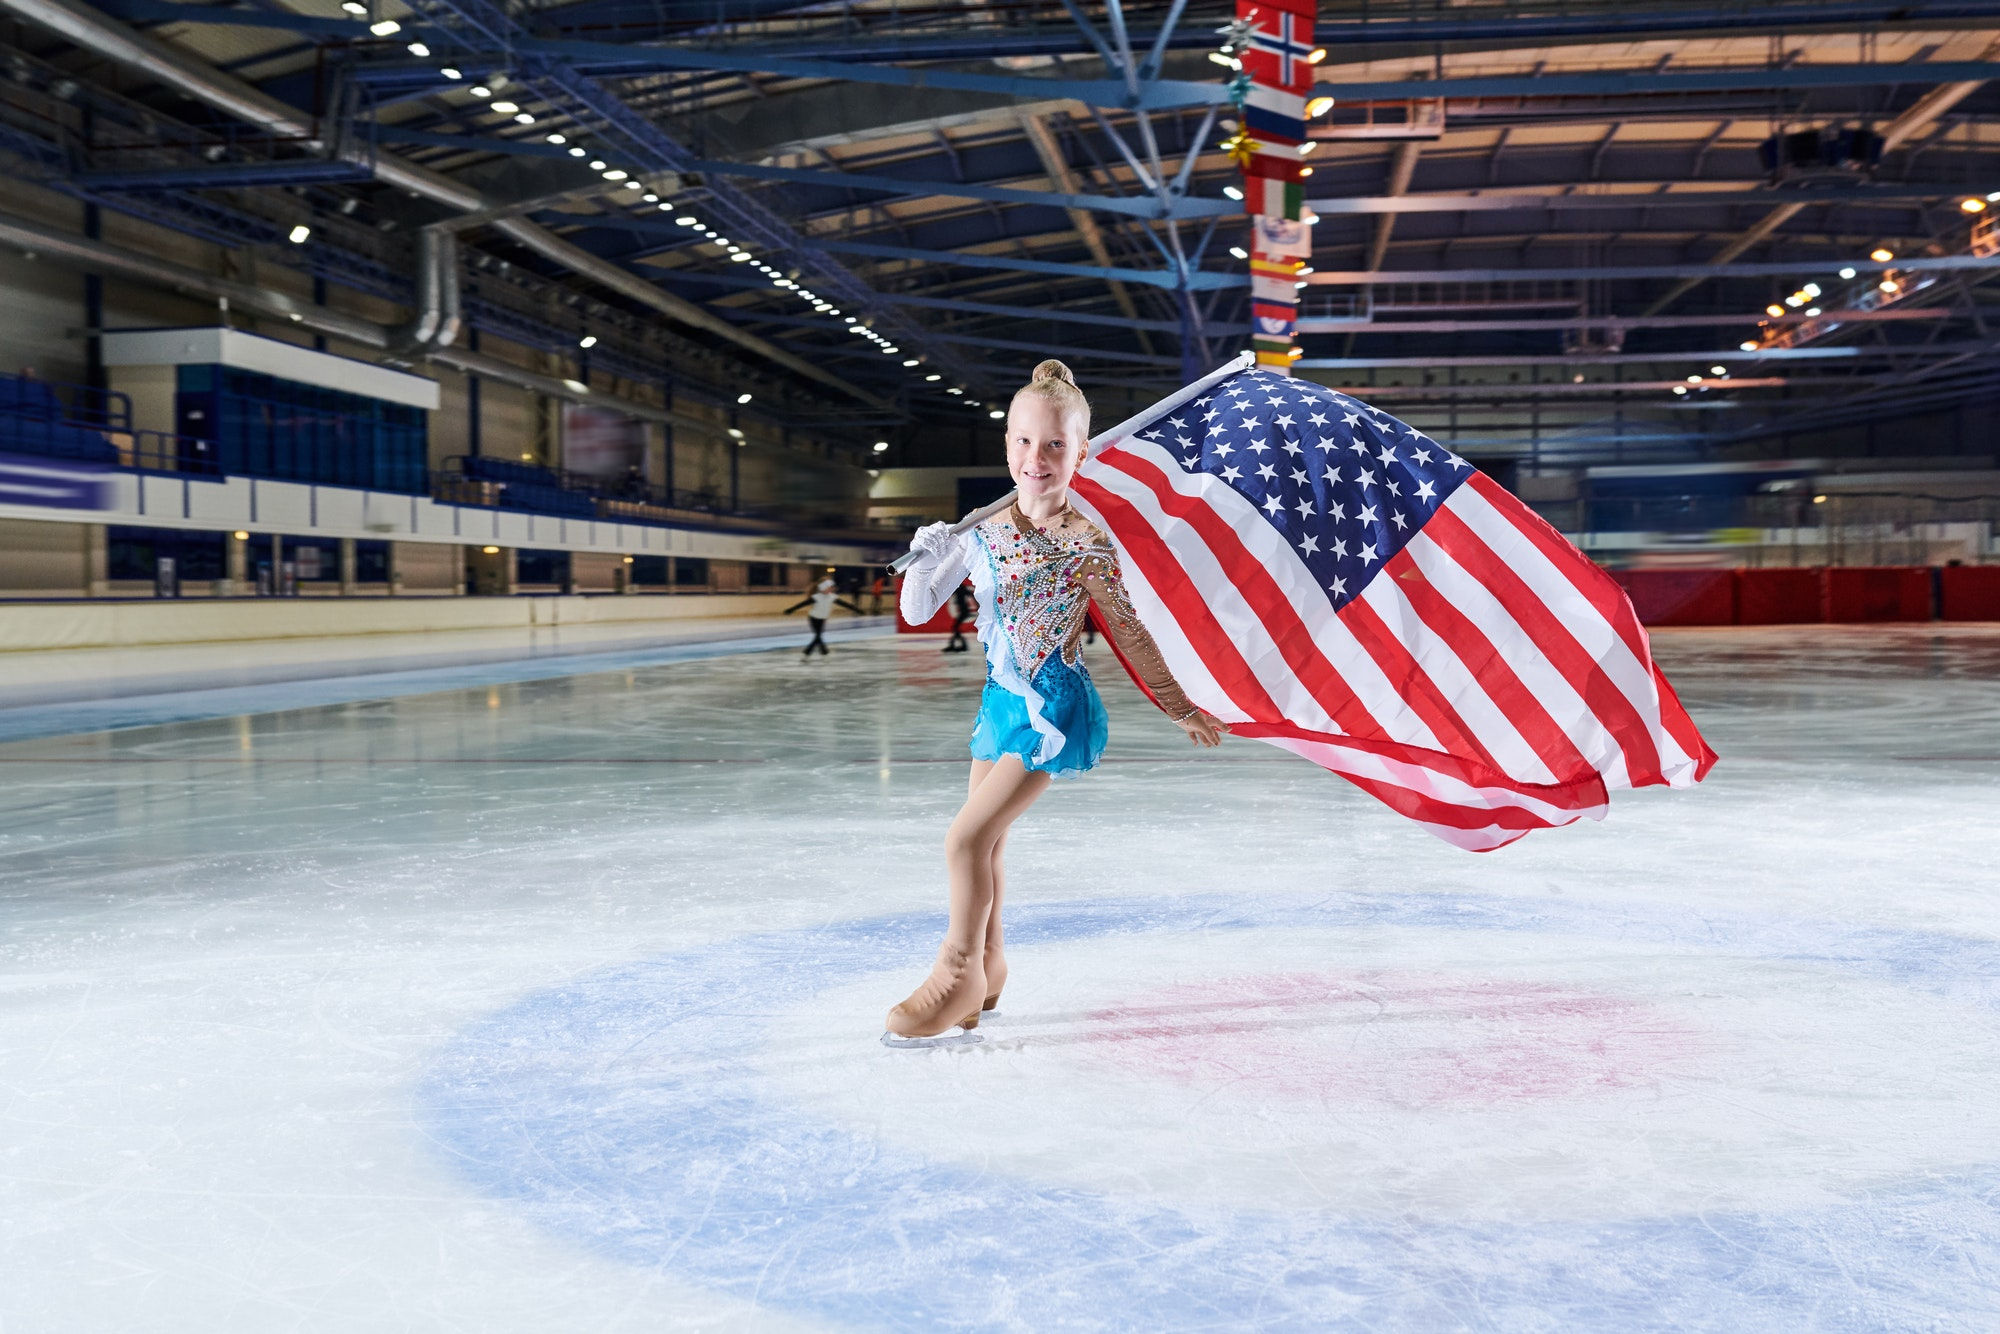 Little Girl Figure-Skating with American Flag